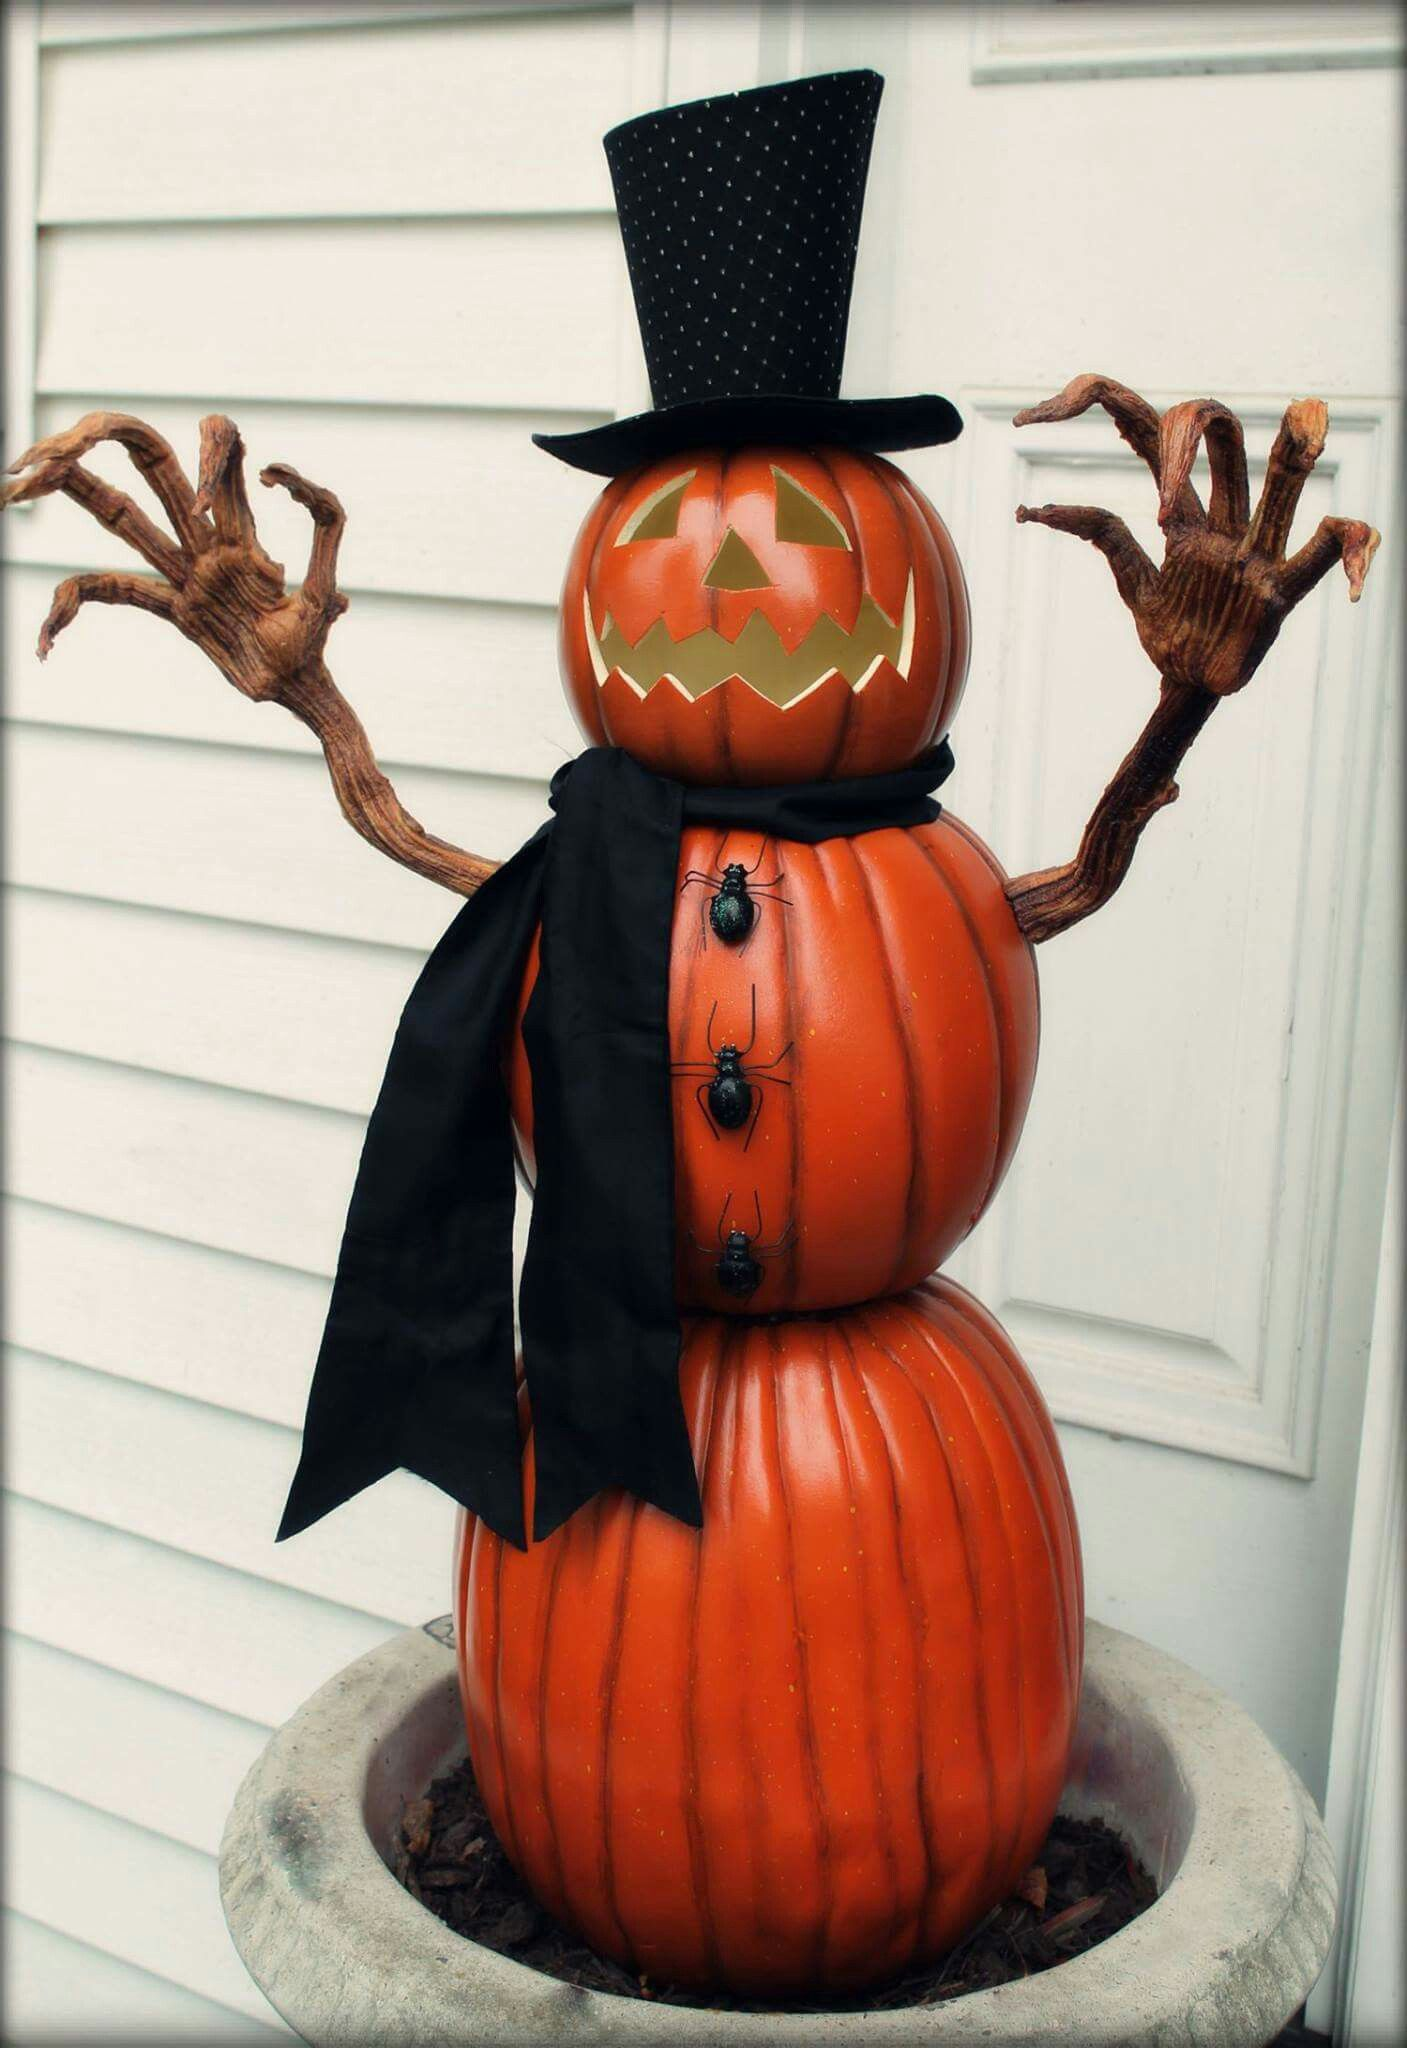 Pin by arlene alejandre on Halloween ideas Pinterest Halloween - homemade halloween decorations pinterest